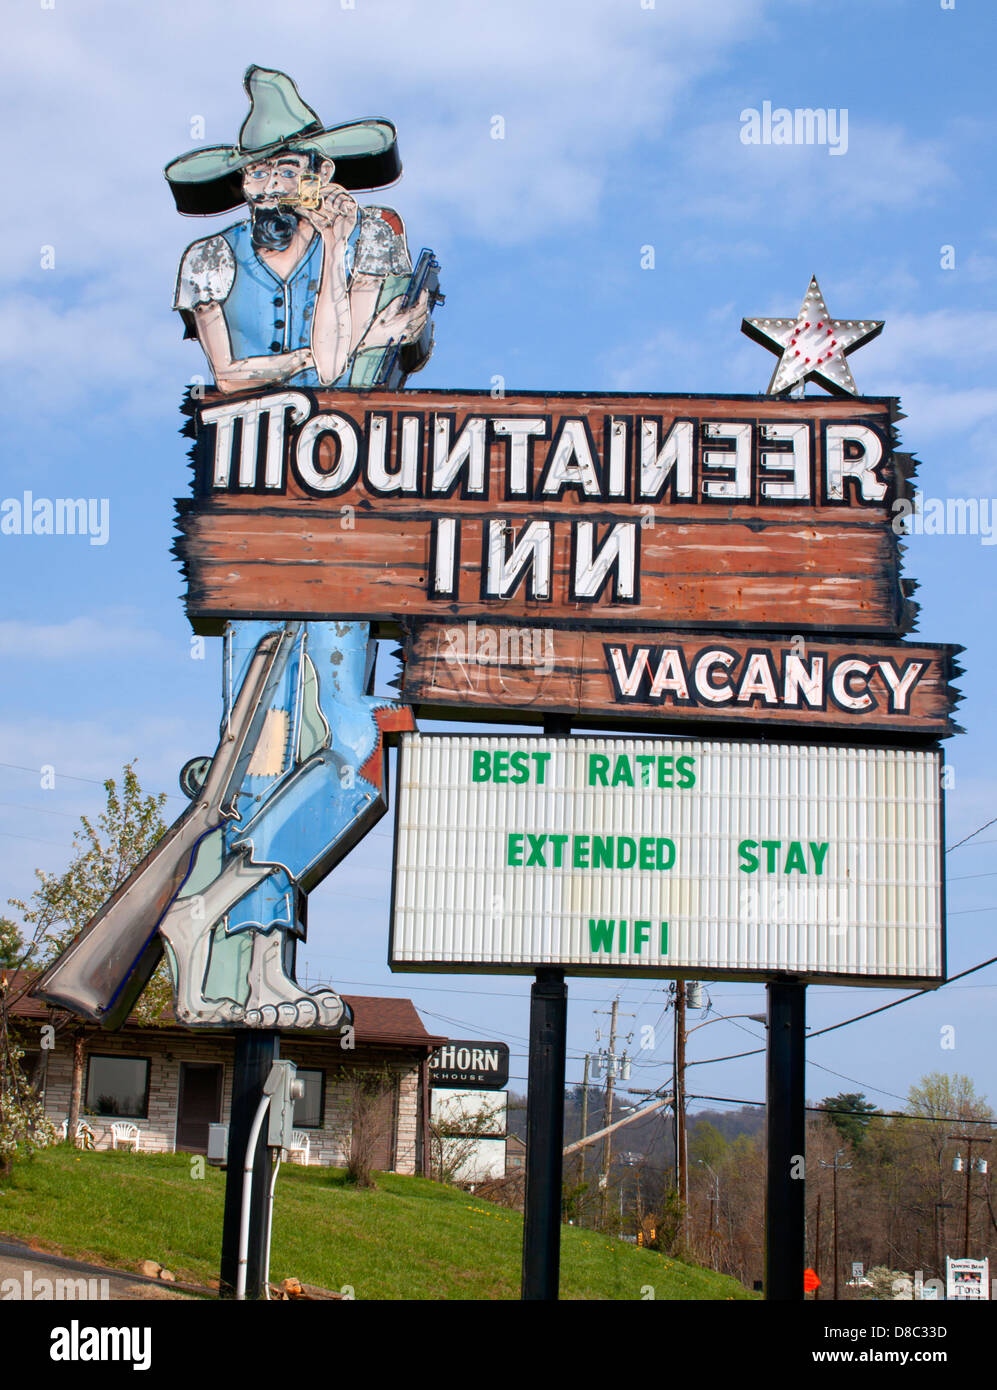 Mountaineer Motel Sign in Asheville North Carolina - Stock Image